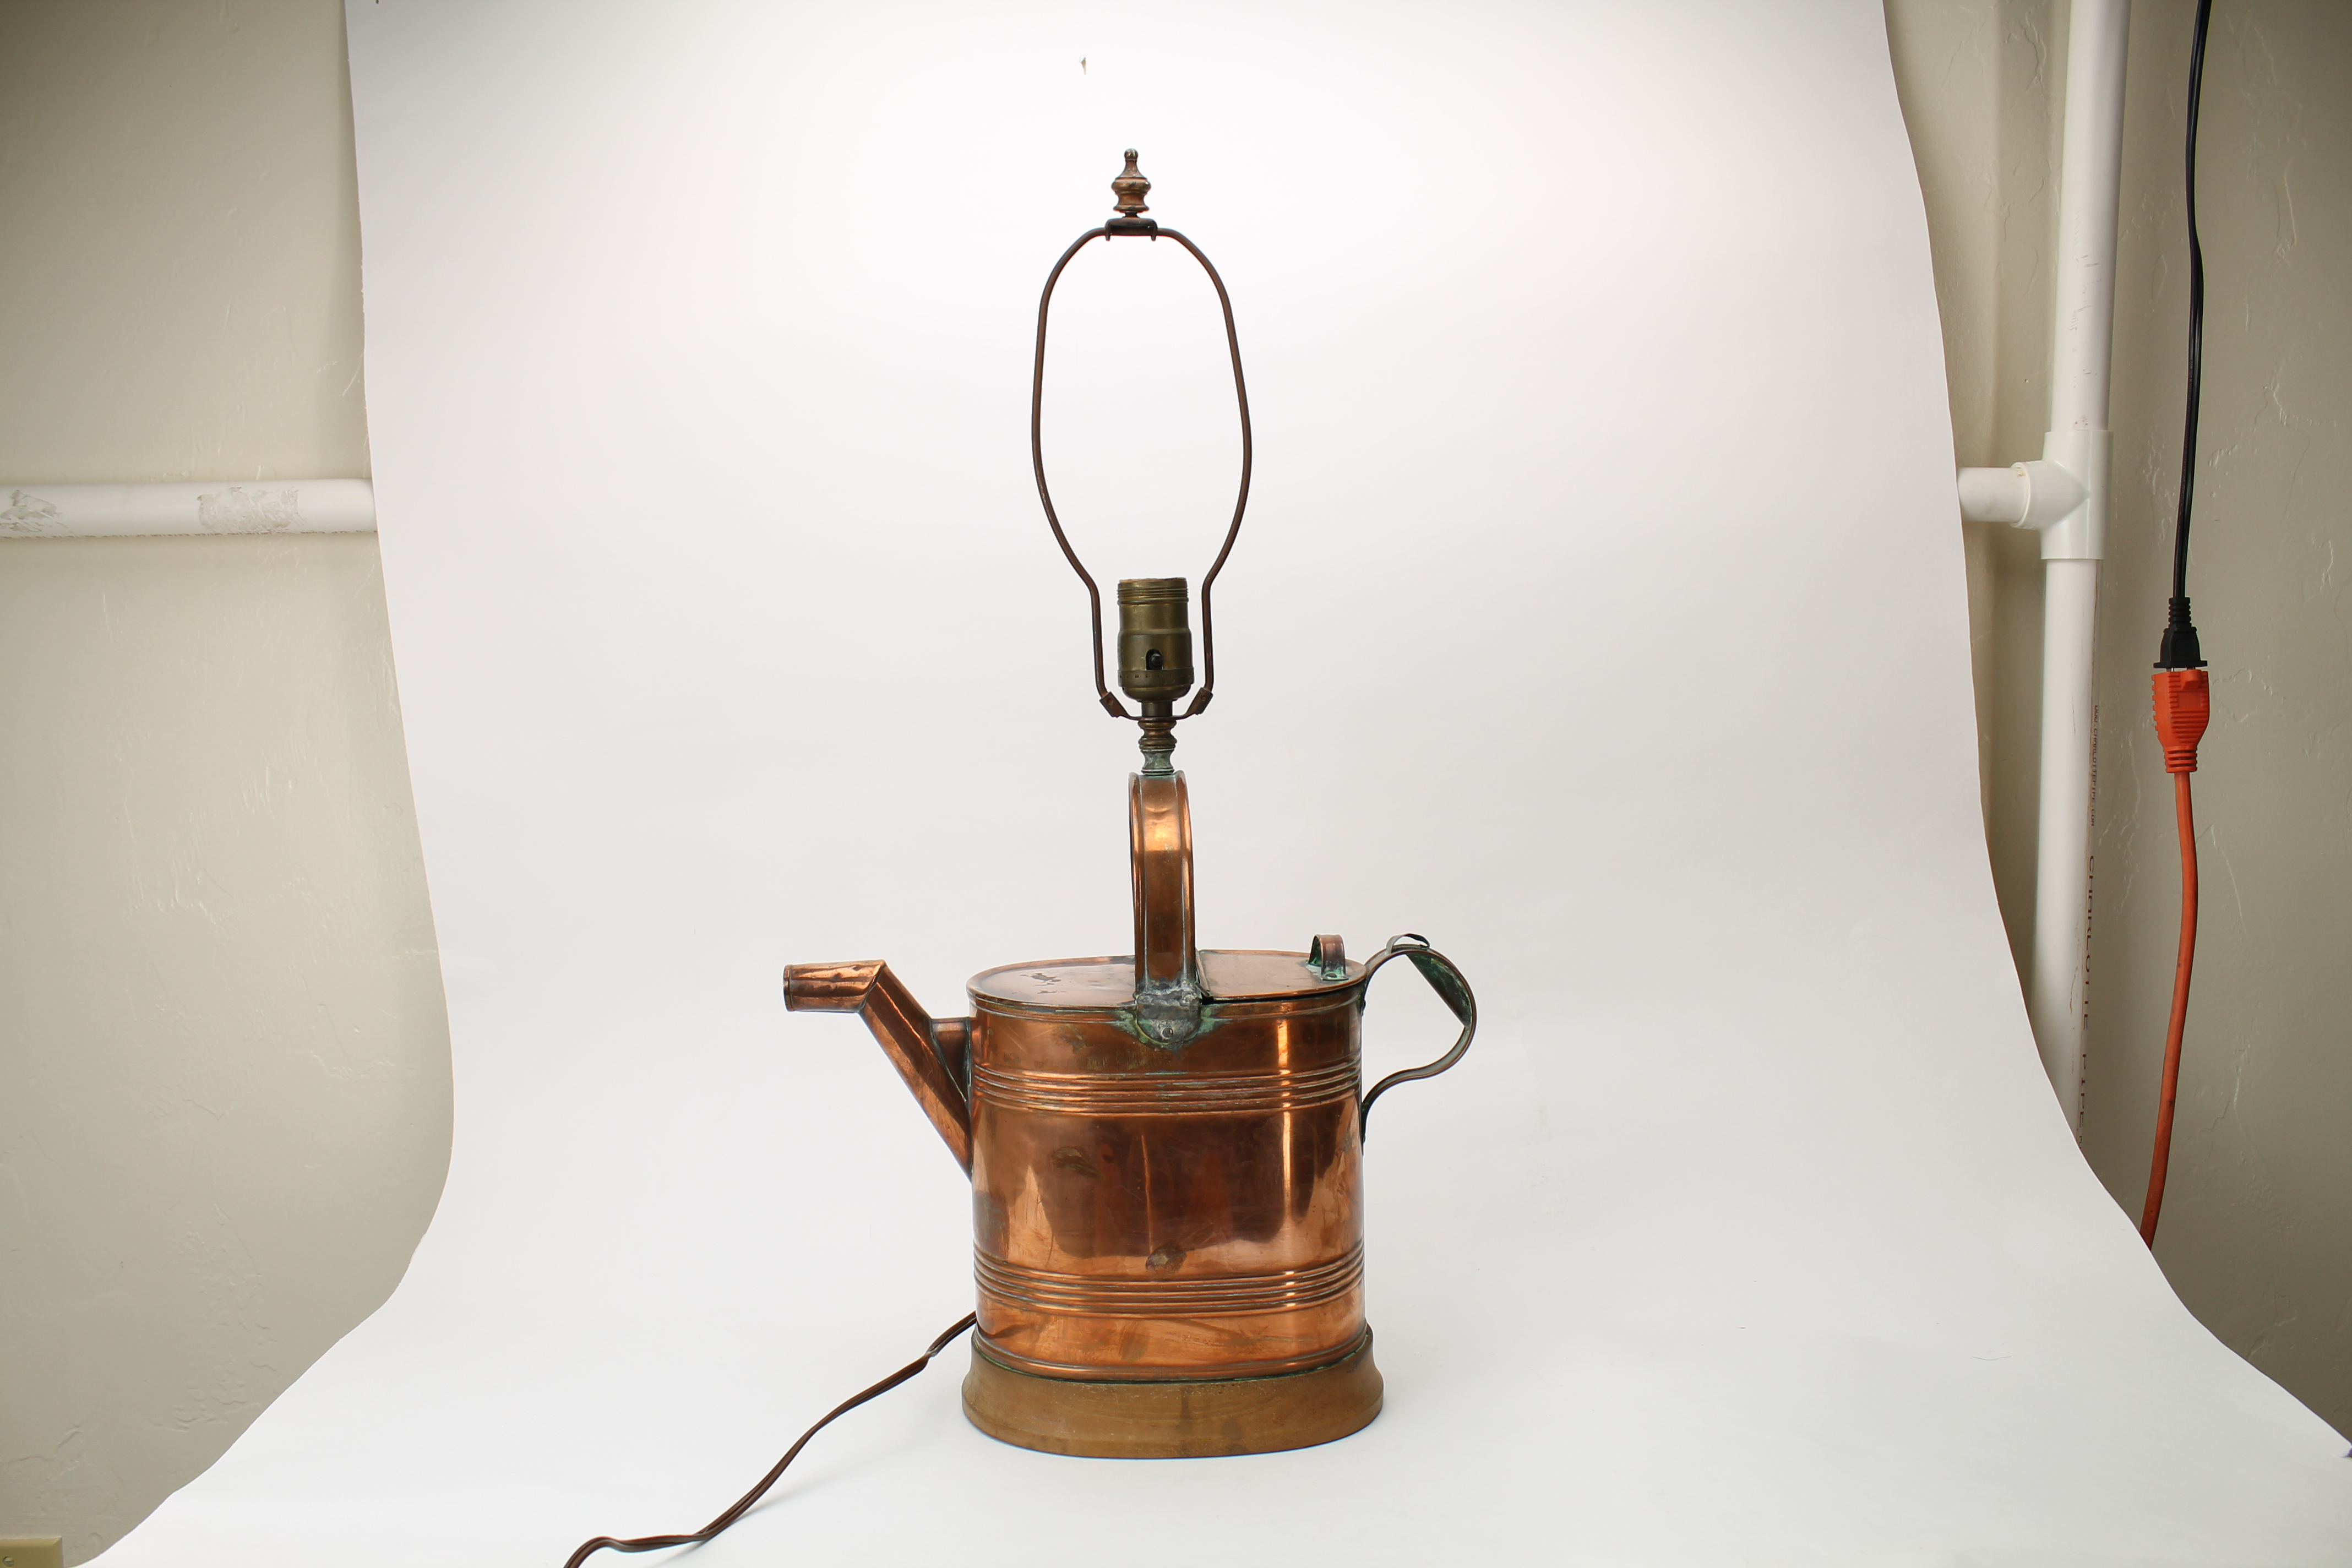 Copper Watering Can Lamp, Wood Base, Hand Made or ...